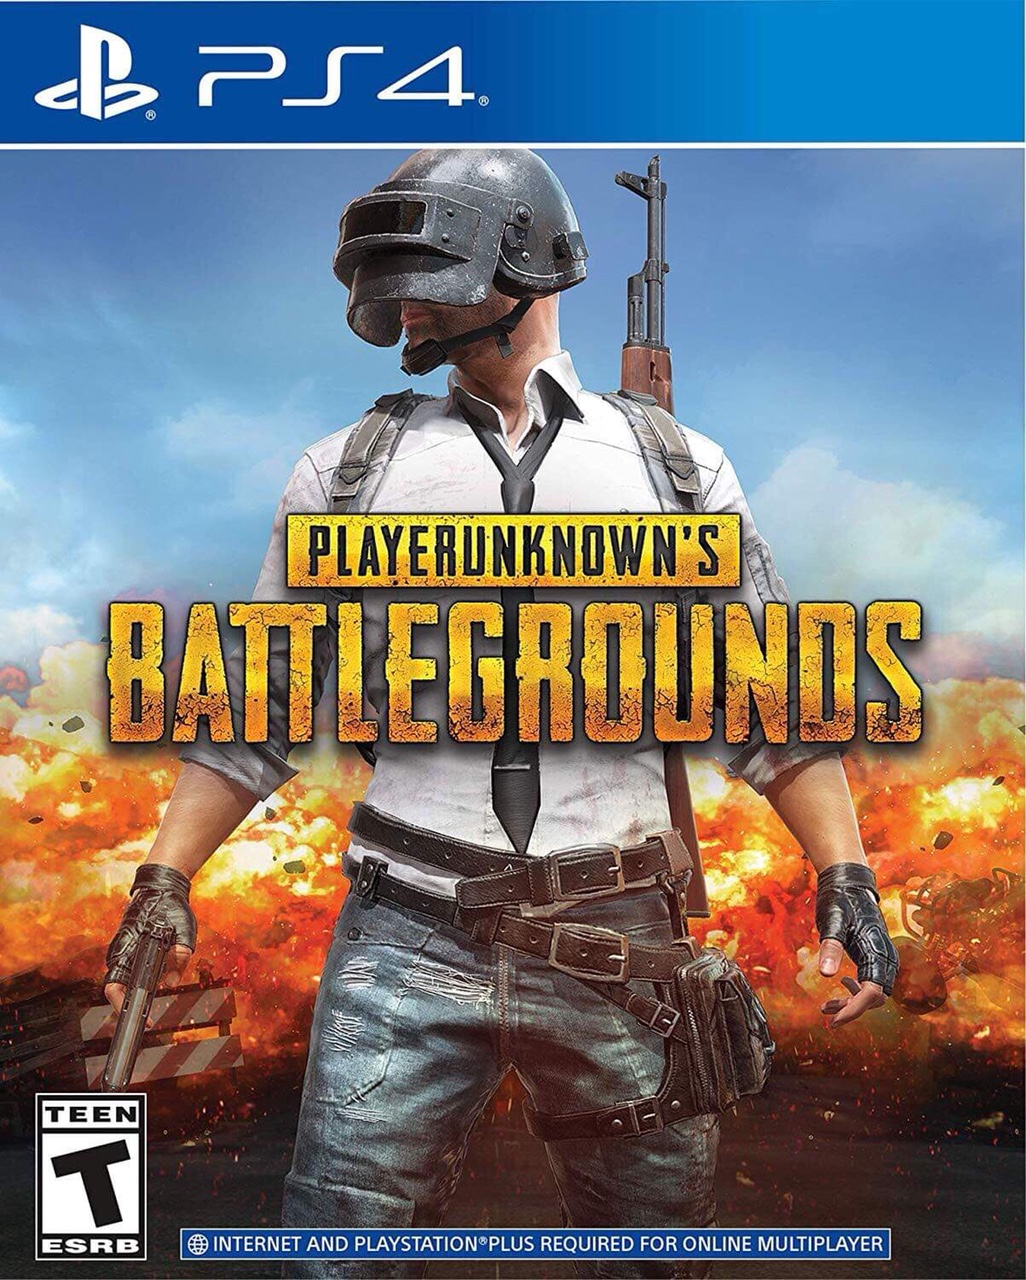 playerunknown-s-battlegrounds-pupg-game-ps4